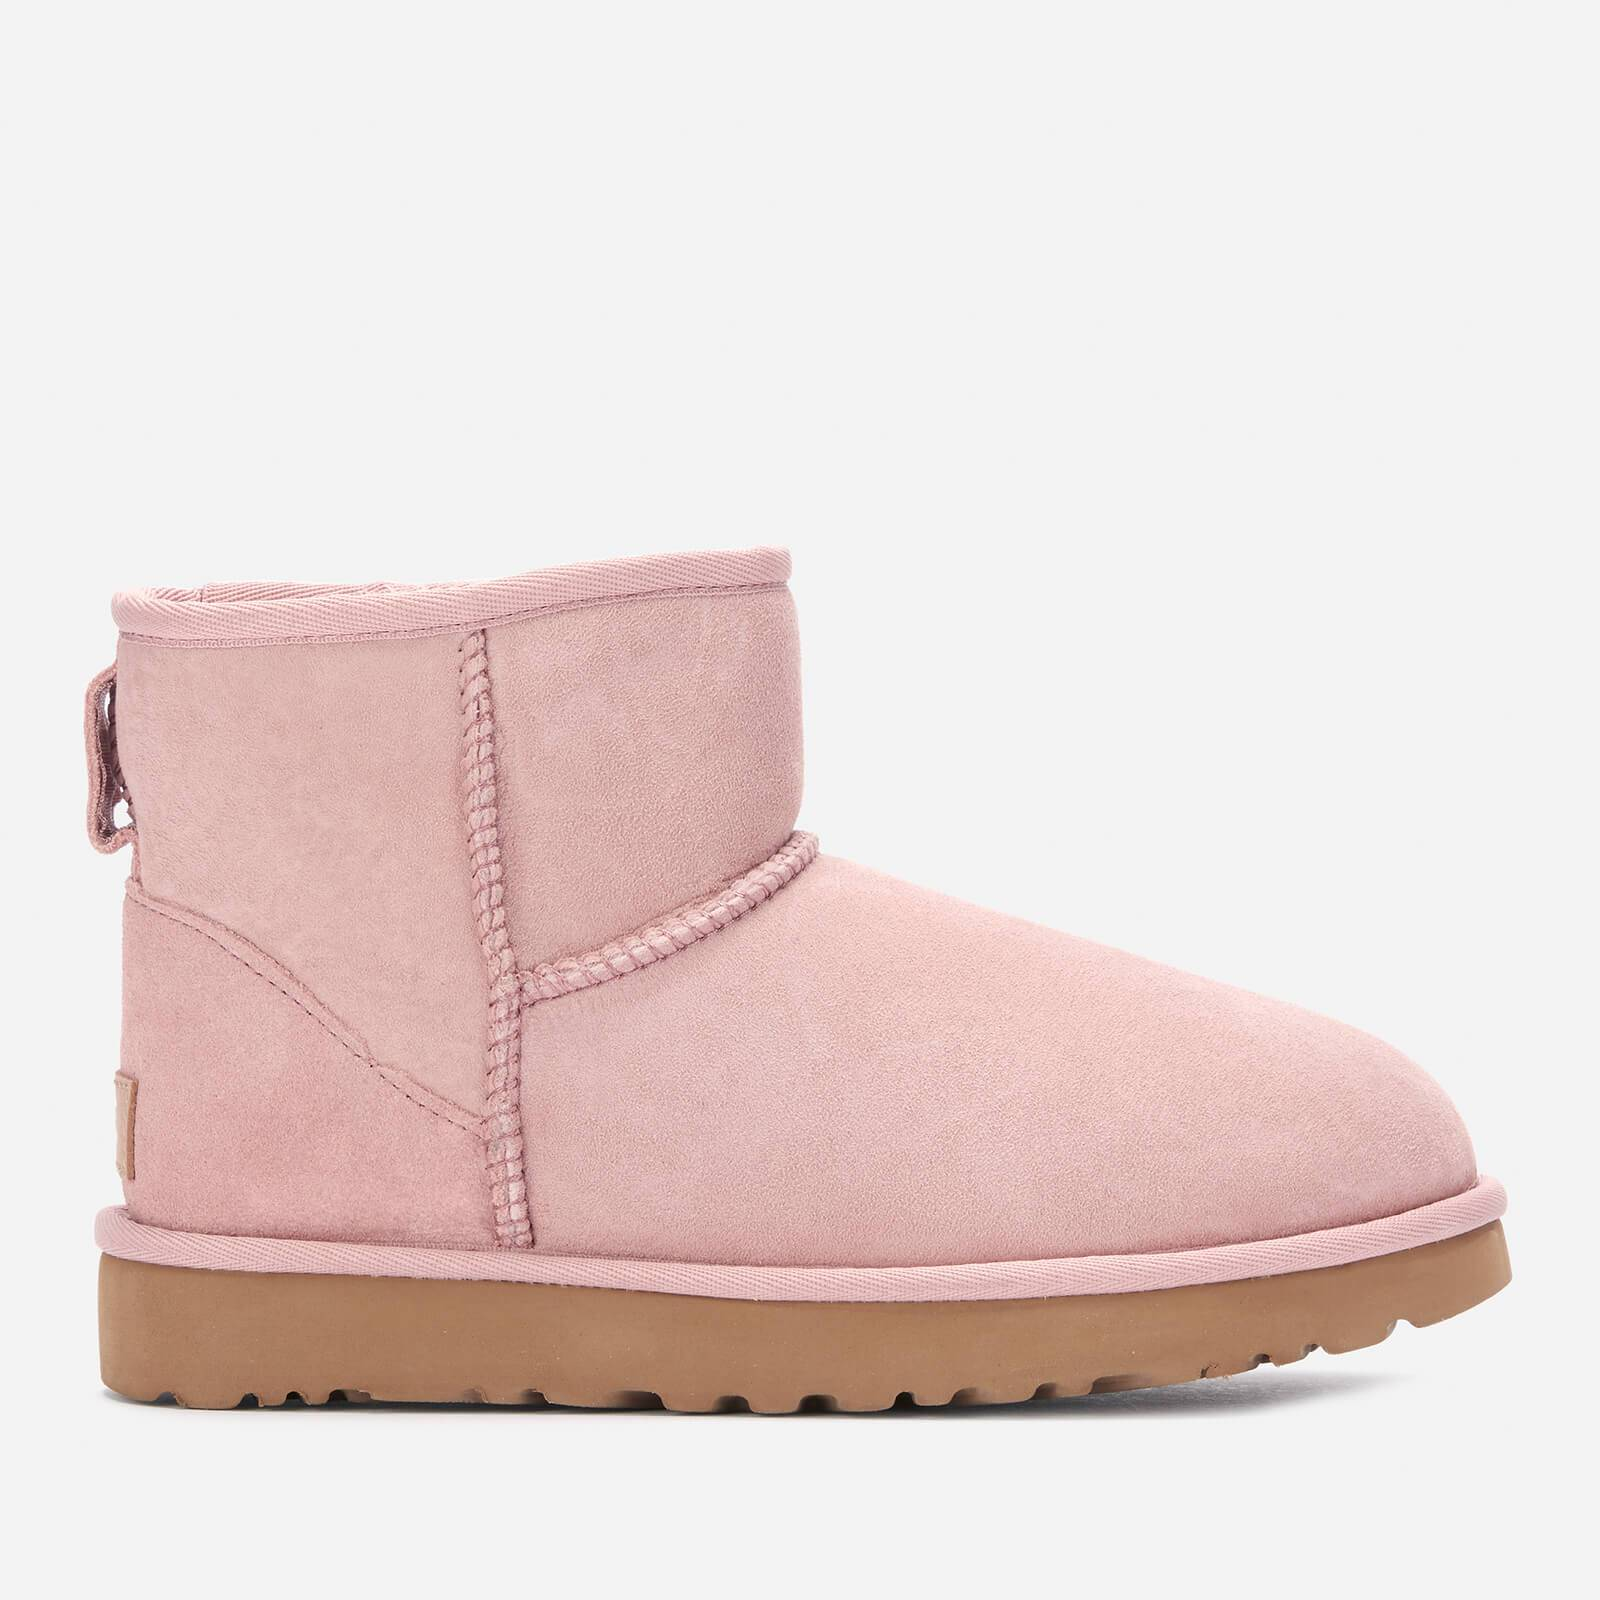 UGG Women's Classic Mini II Sheepskin Boots - Pink Crystal - UK 3